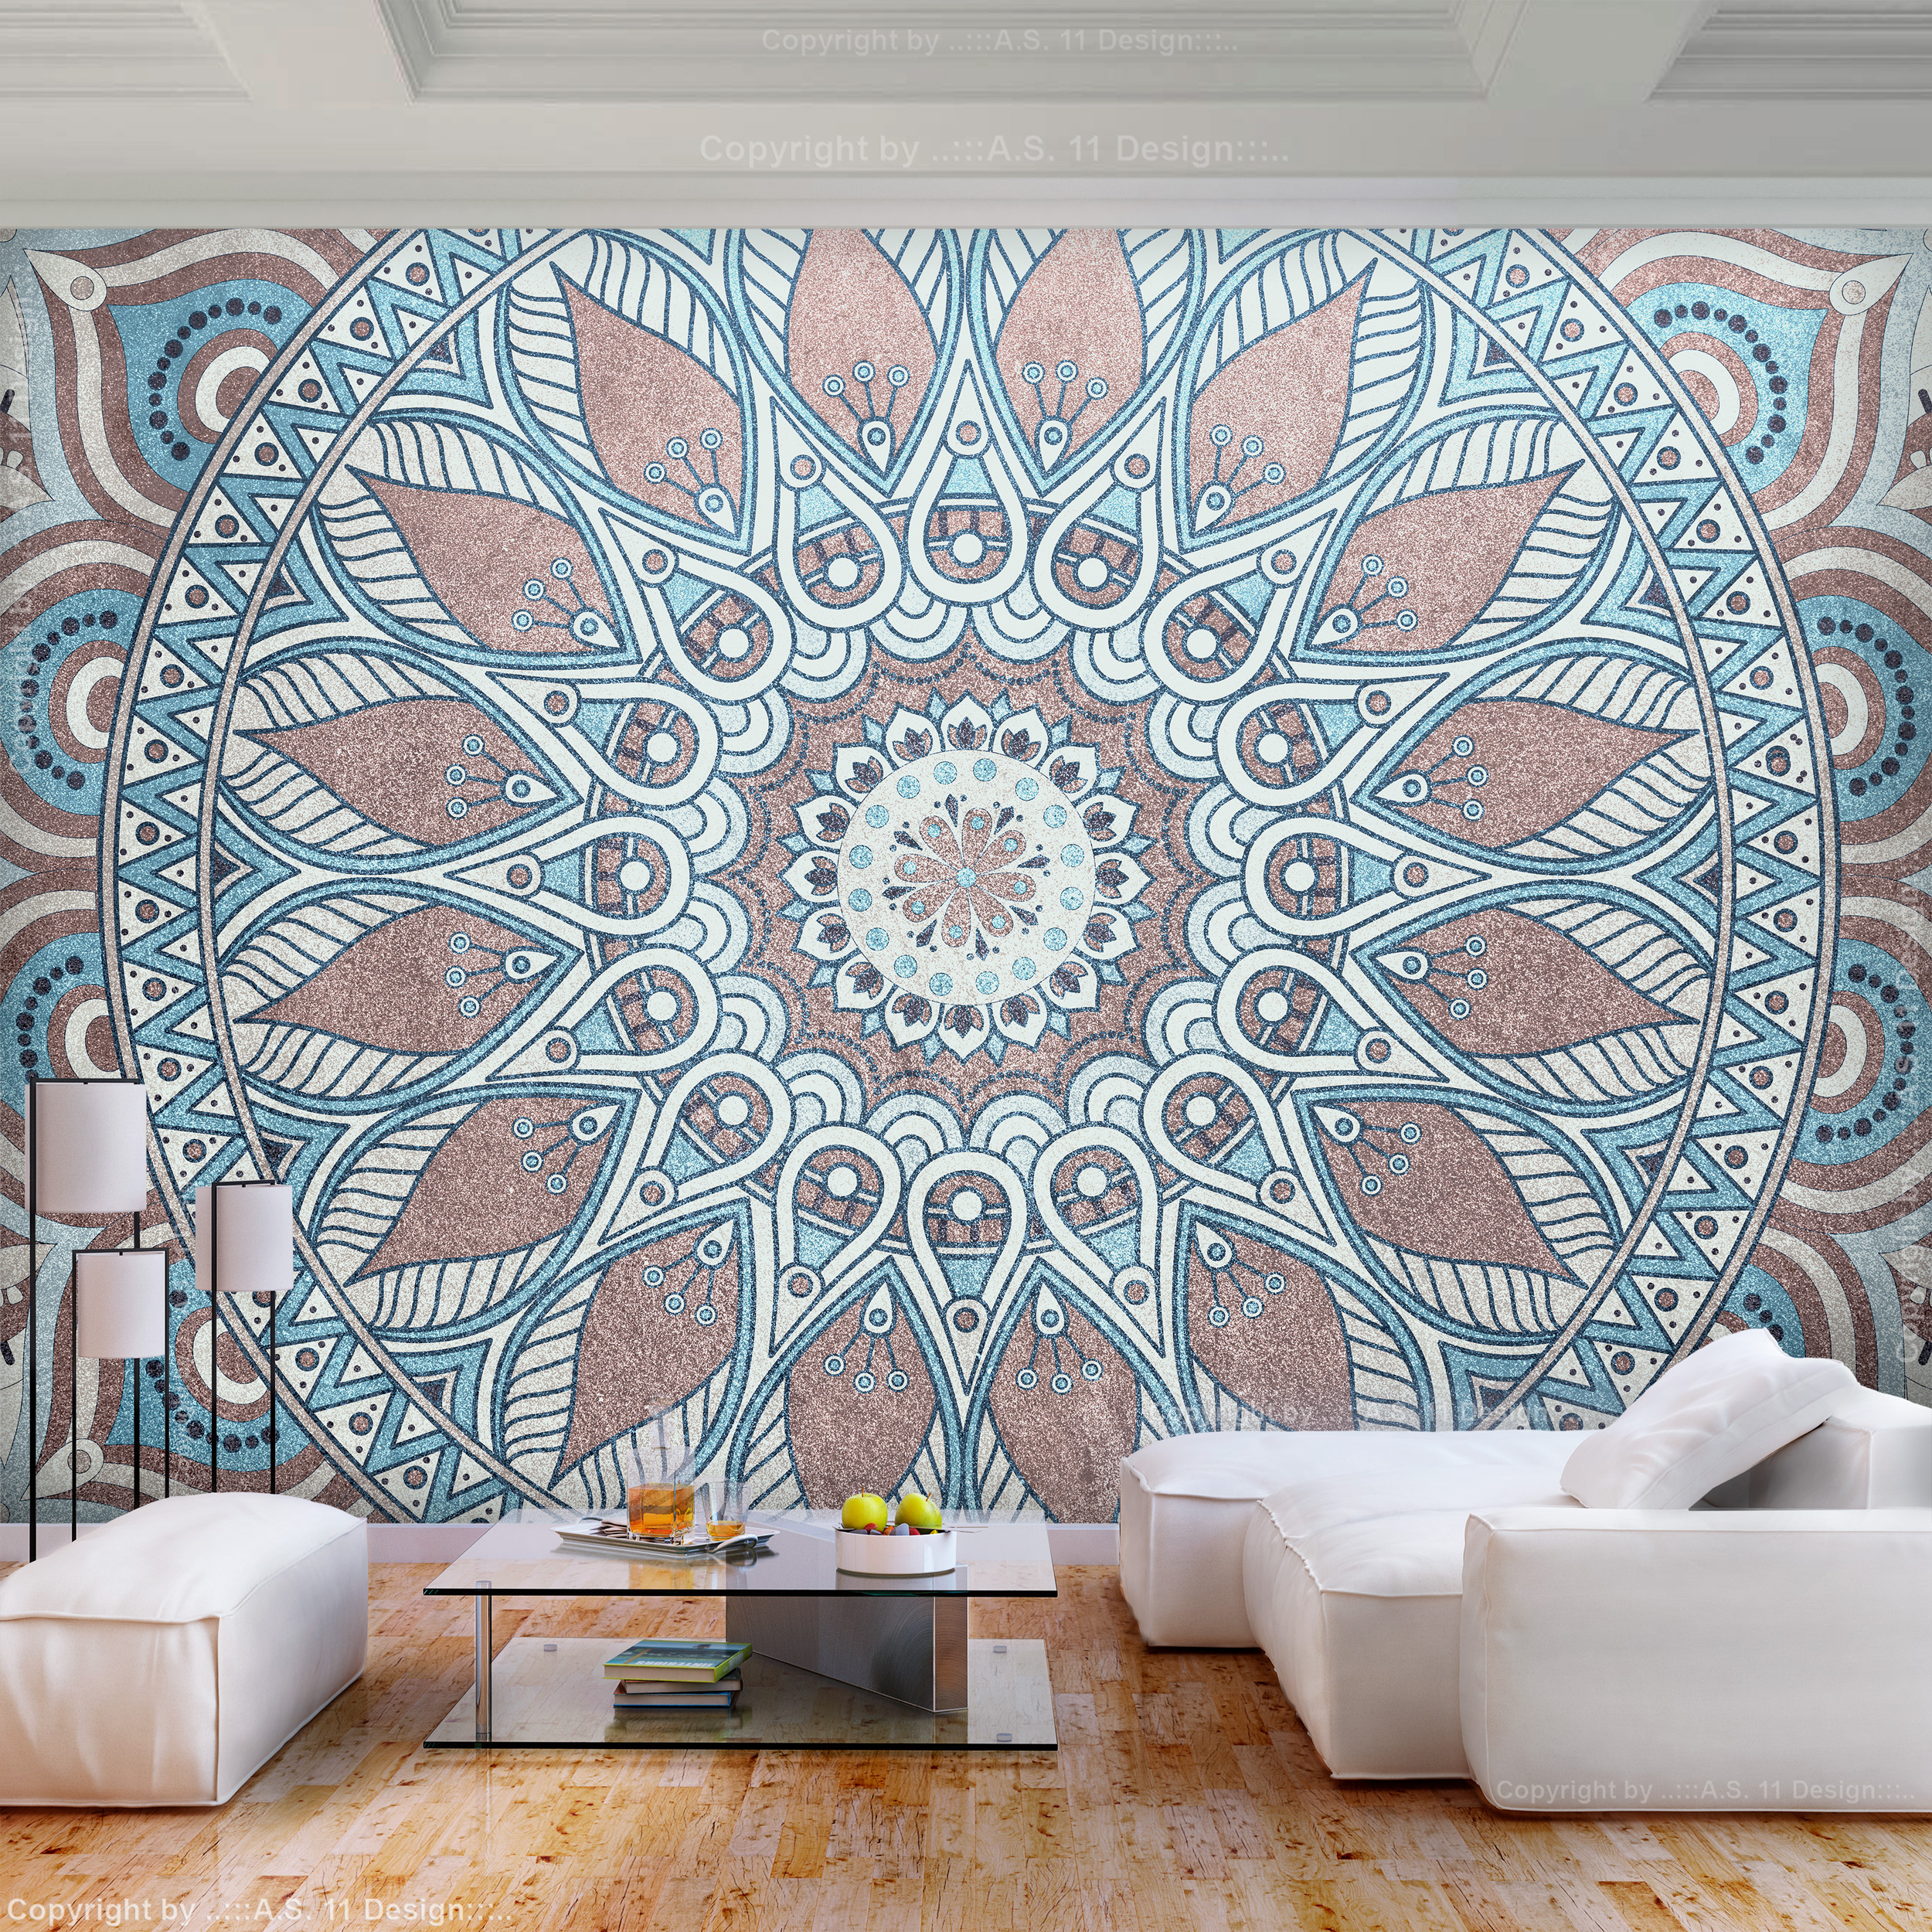 vlies fototapete mandala ornament braun blau tapete wandbilder xxl wohnzimmer 72 ebay. Black Bedroom Furniture Sets. Home Design Ideas